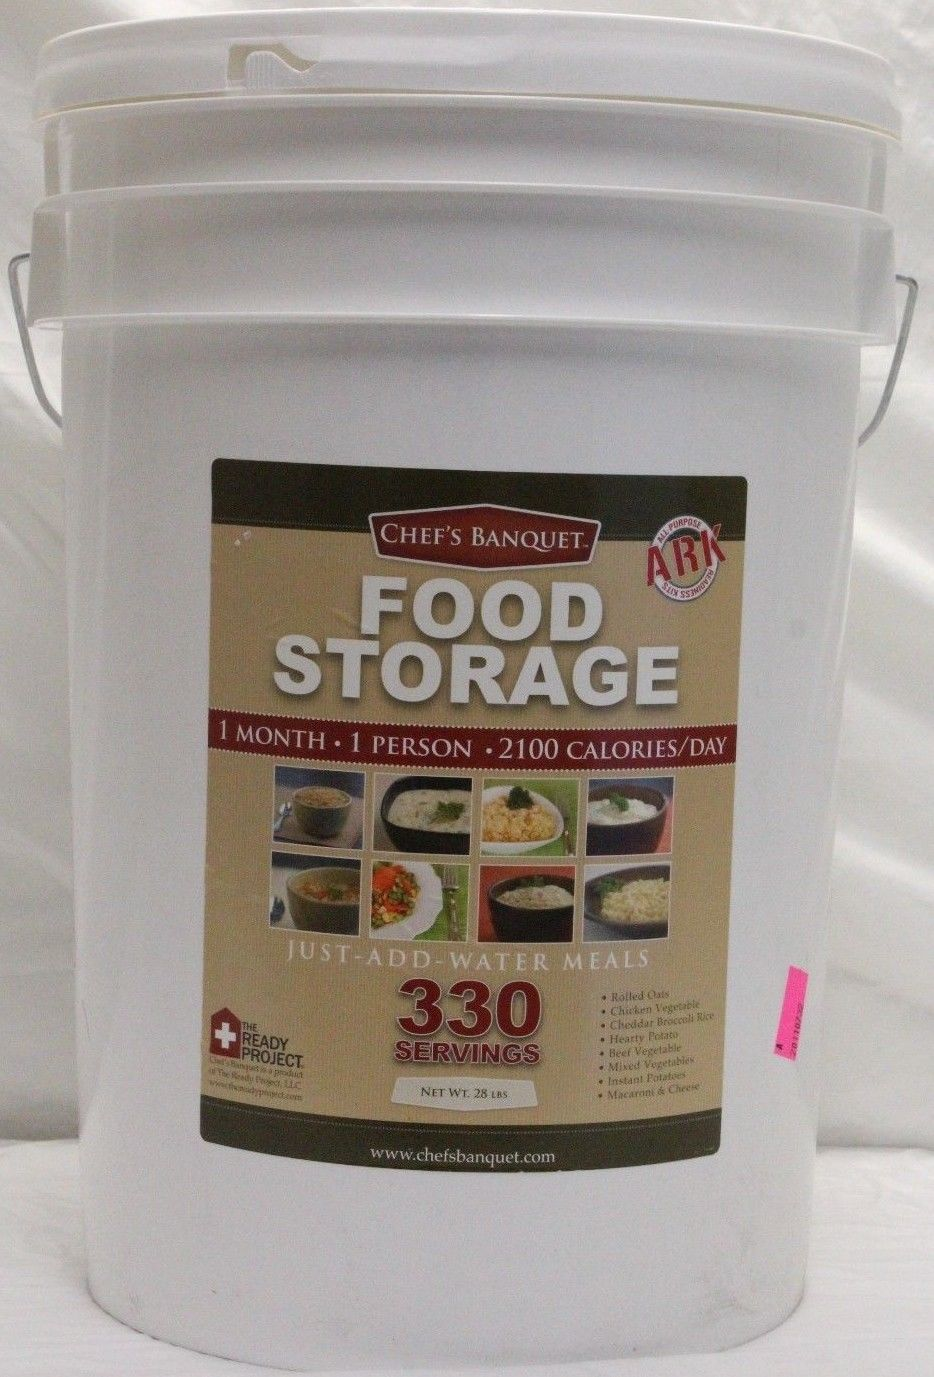 *NEW* ARK 330 Servings Food Storage Kit by Chefs Banquet For Emergency/Camping 1